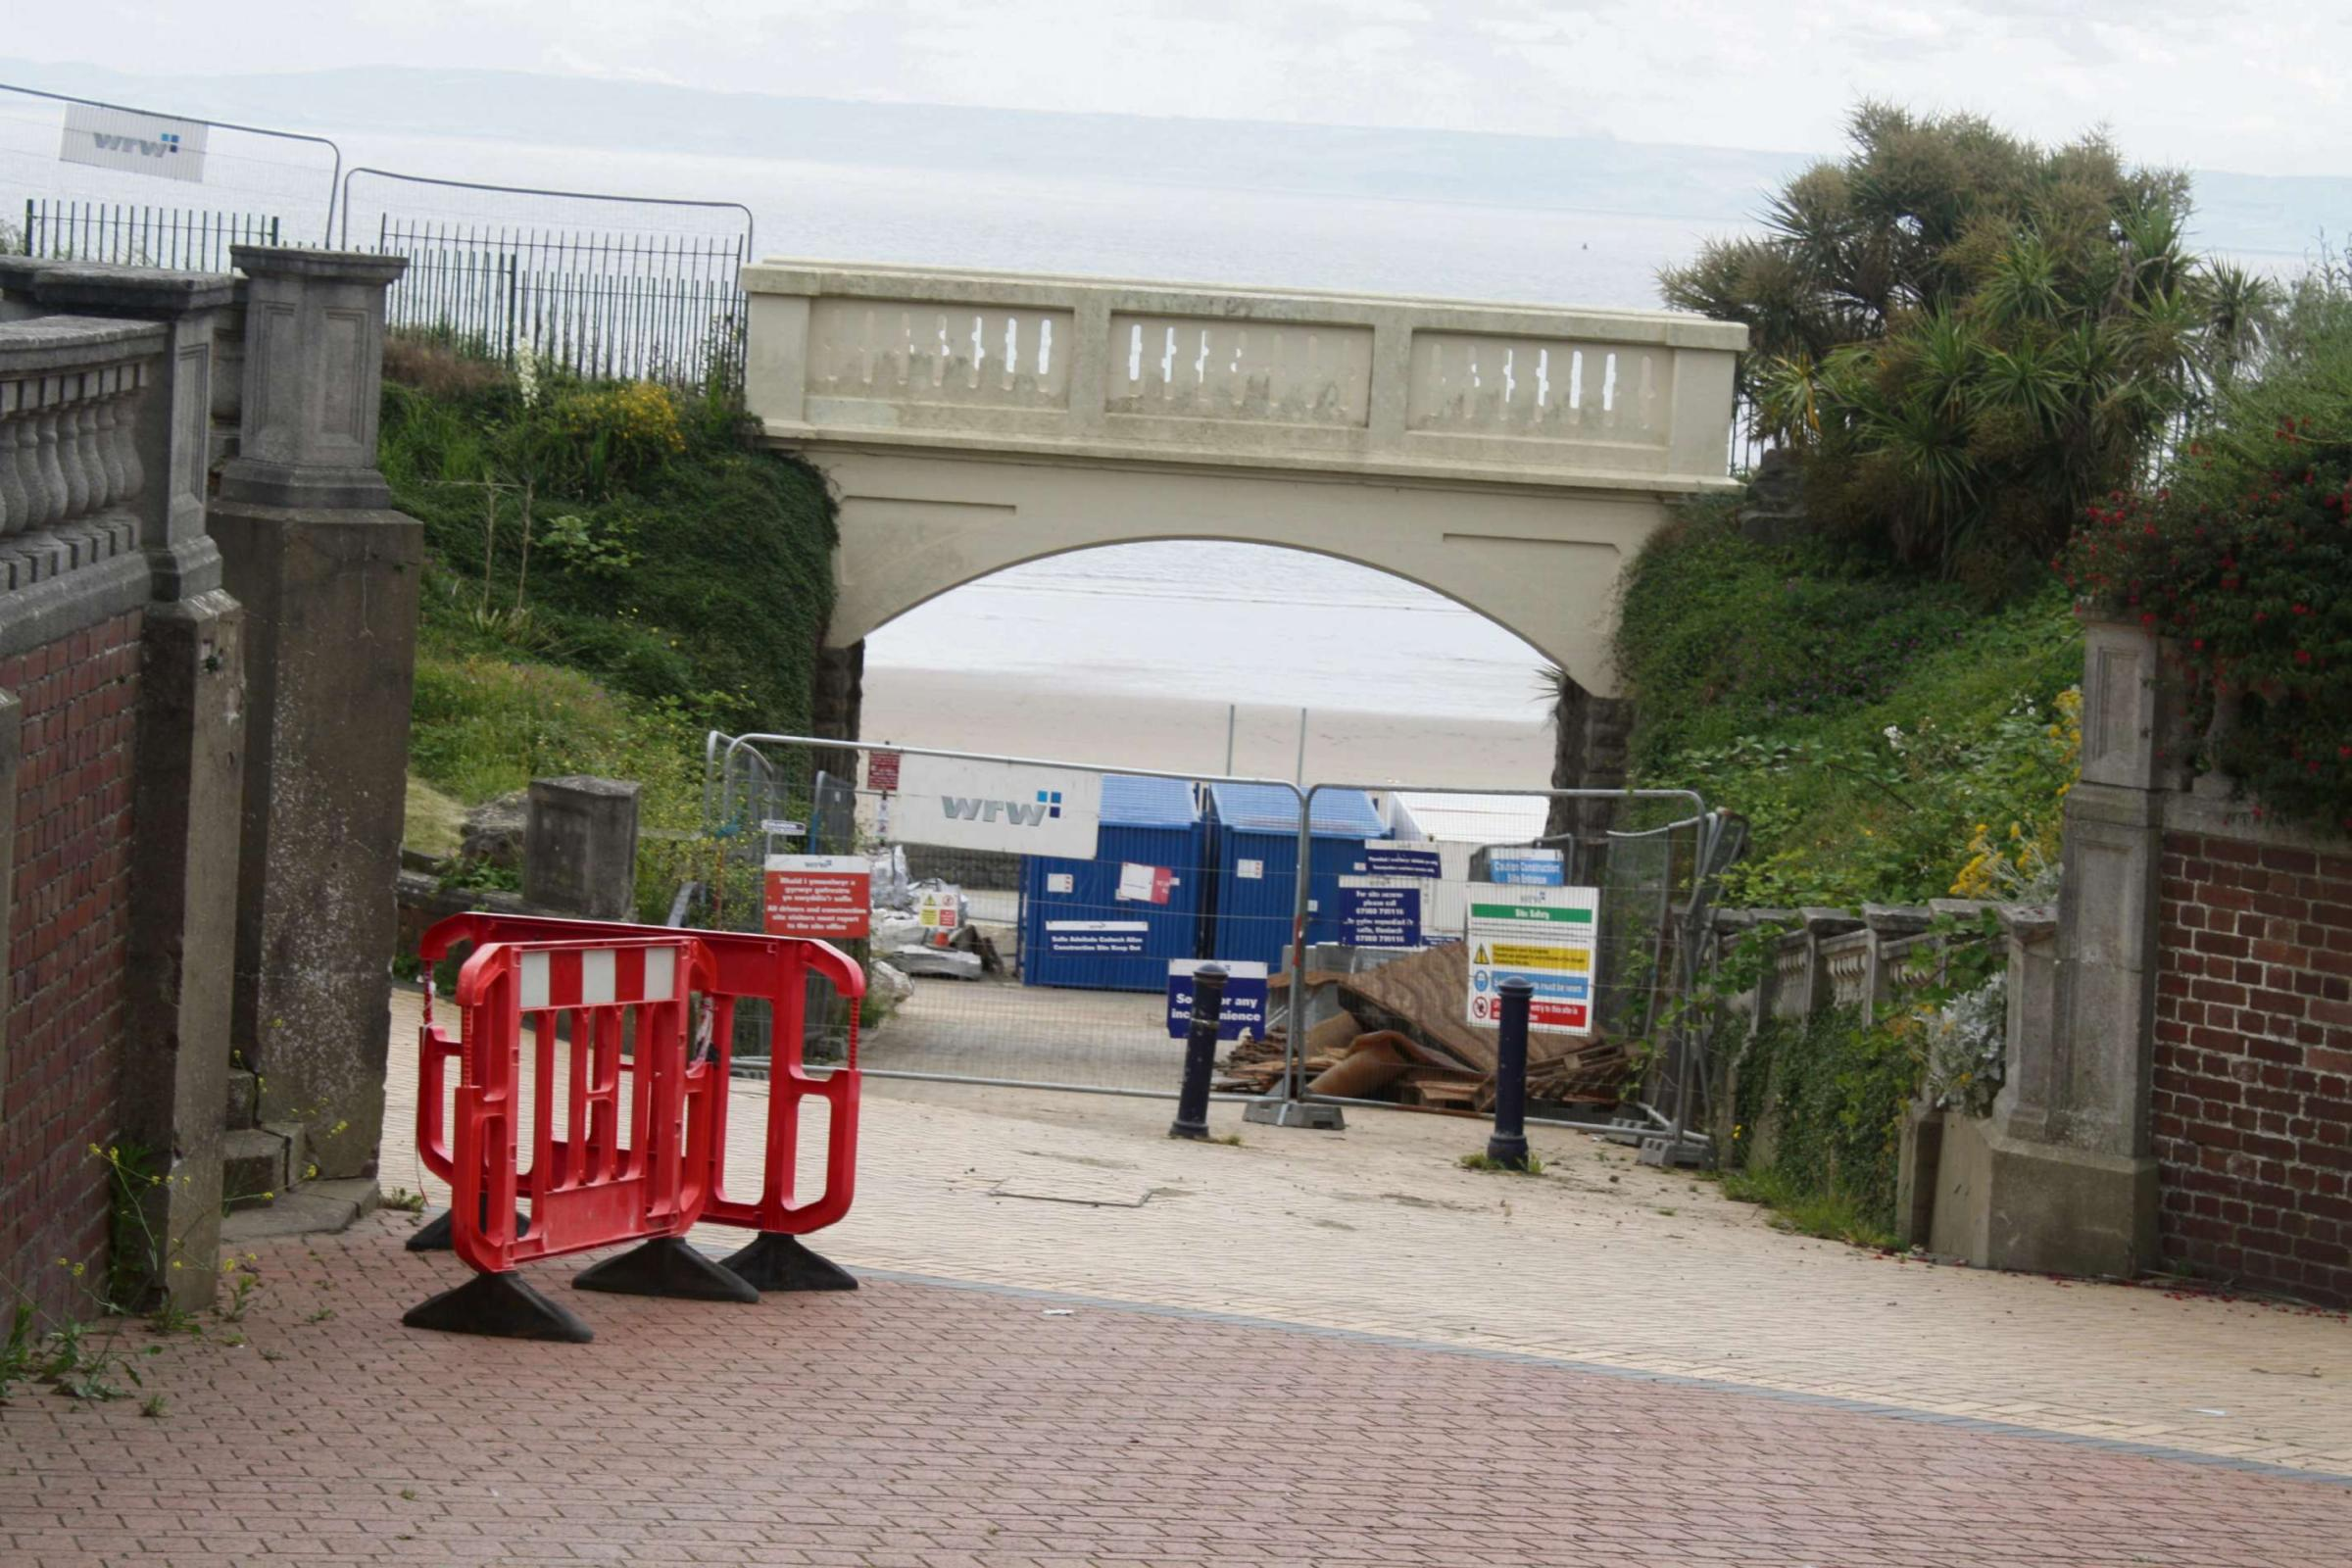 Barry Island beach huts will not be ready for summer season